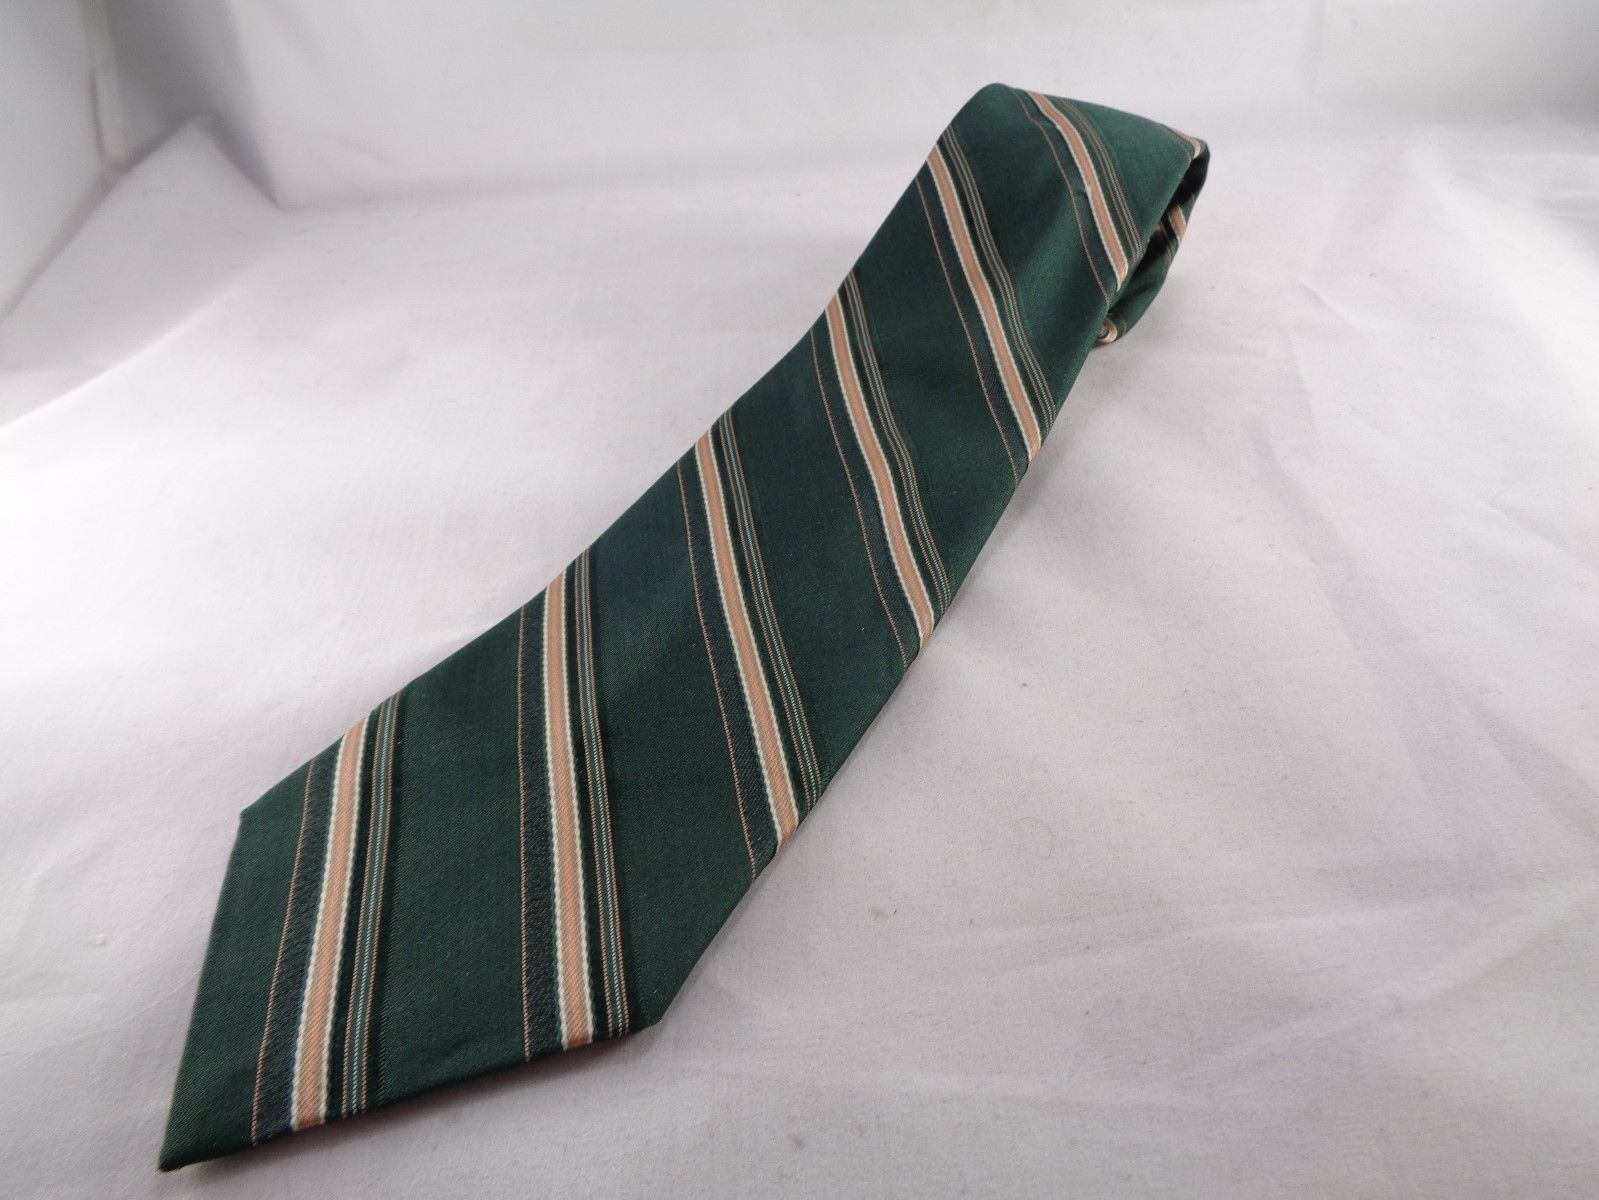 "Sears Mens Store Striped Tie Polyester Green orange Necktie 57"" Long  3.5"" W - $10.68"